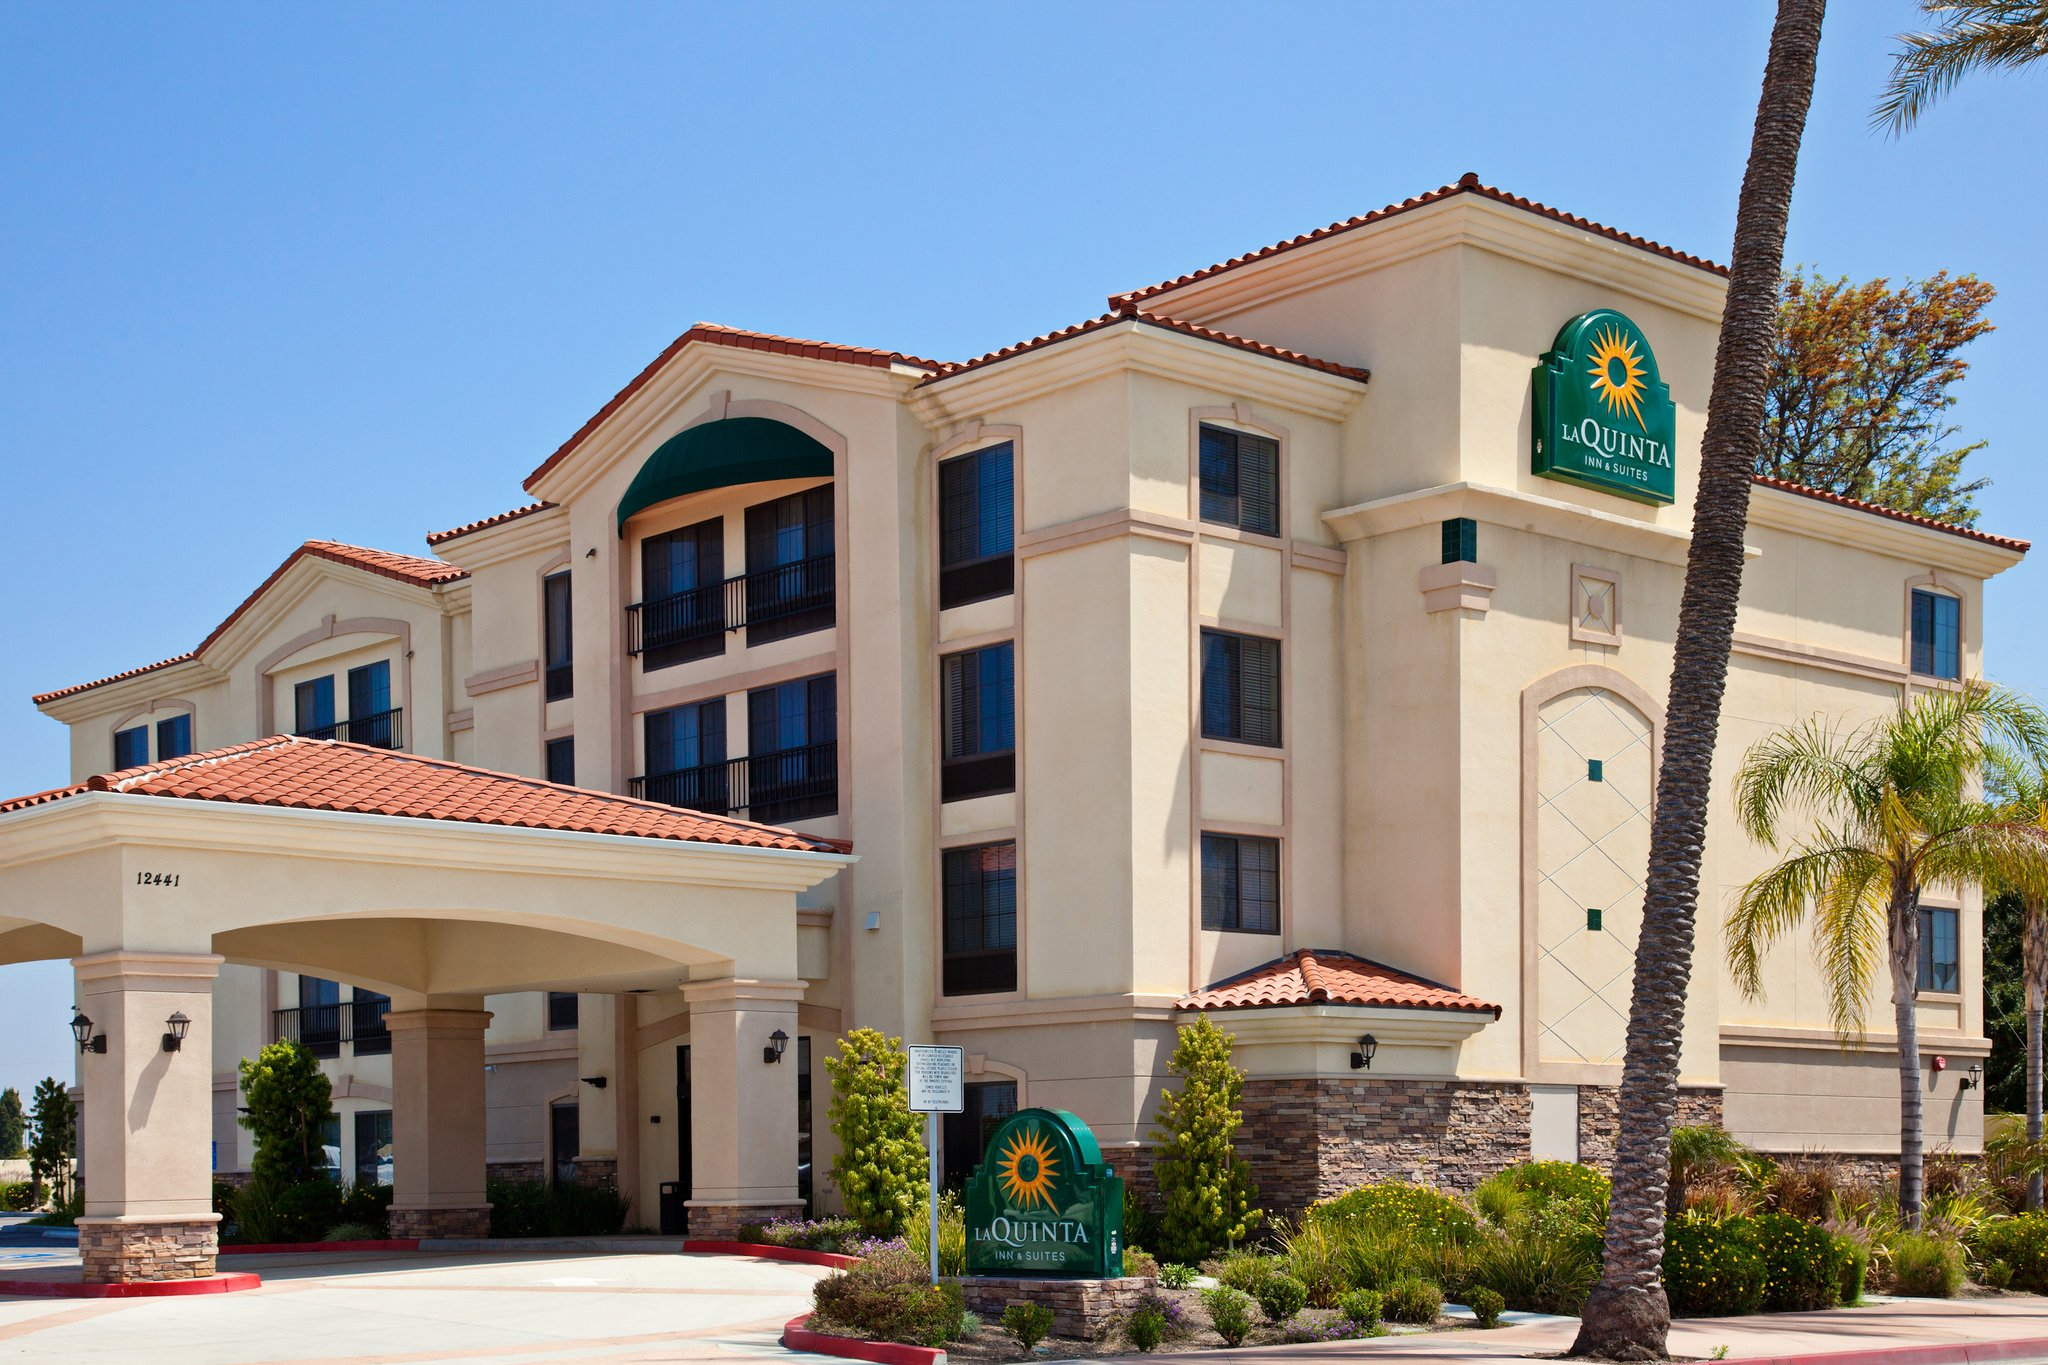 La Quinta Inn & Suites NE Long Beach/Cypress